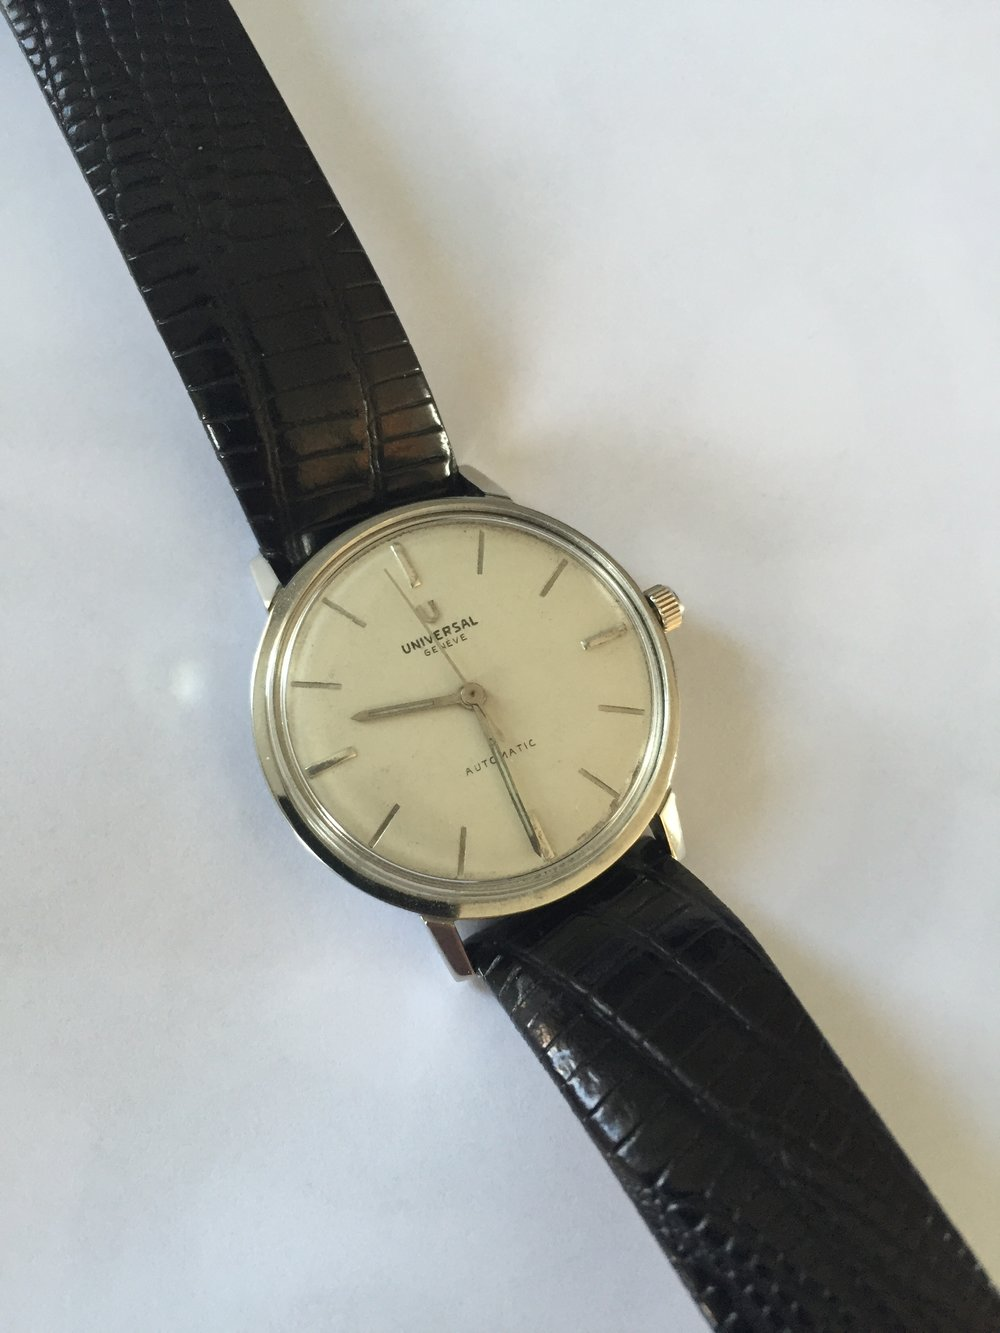 Photo from FS listing. My apologies to the seller, but this is just not even close to being an original dial.  To someone where that isn't important, this watch is down to $300 asking, click through for more info and to purchase.